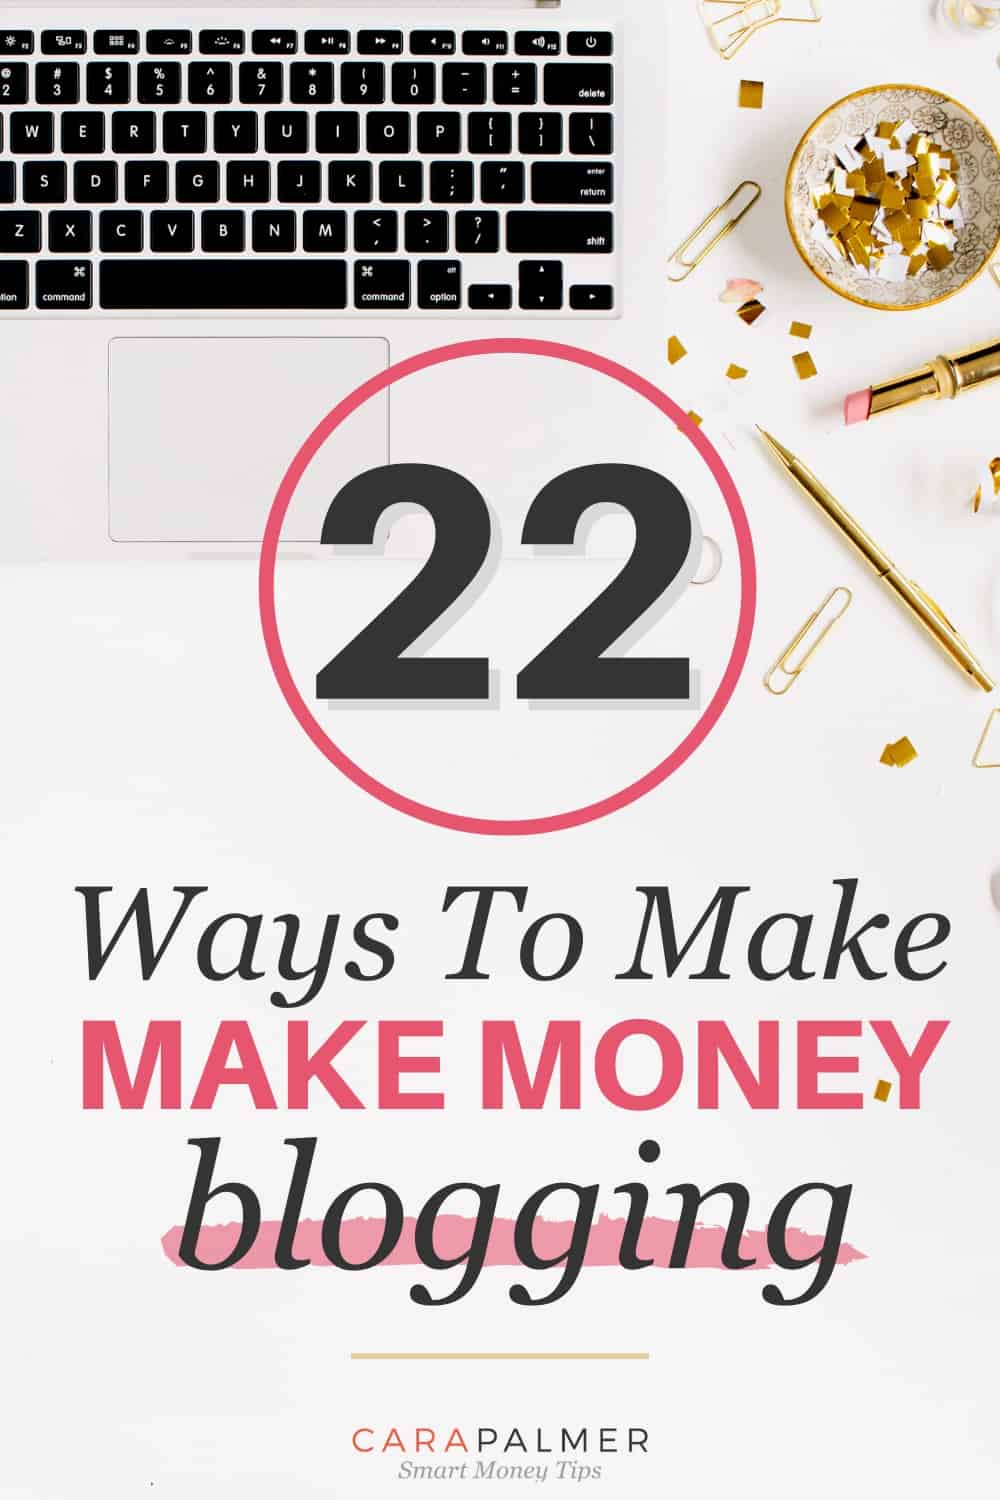 Learn how to make money and get paid to blog